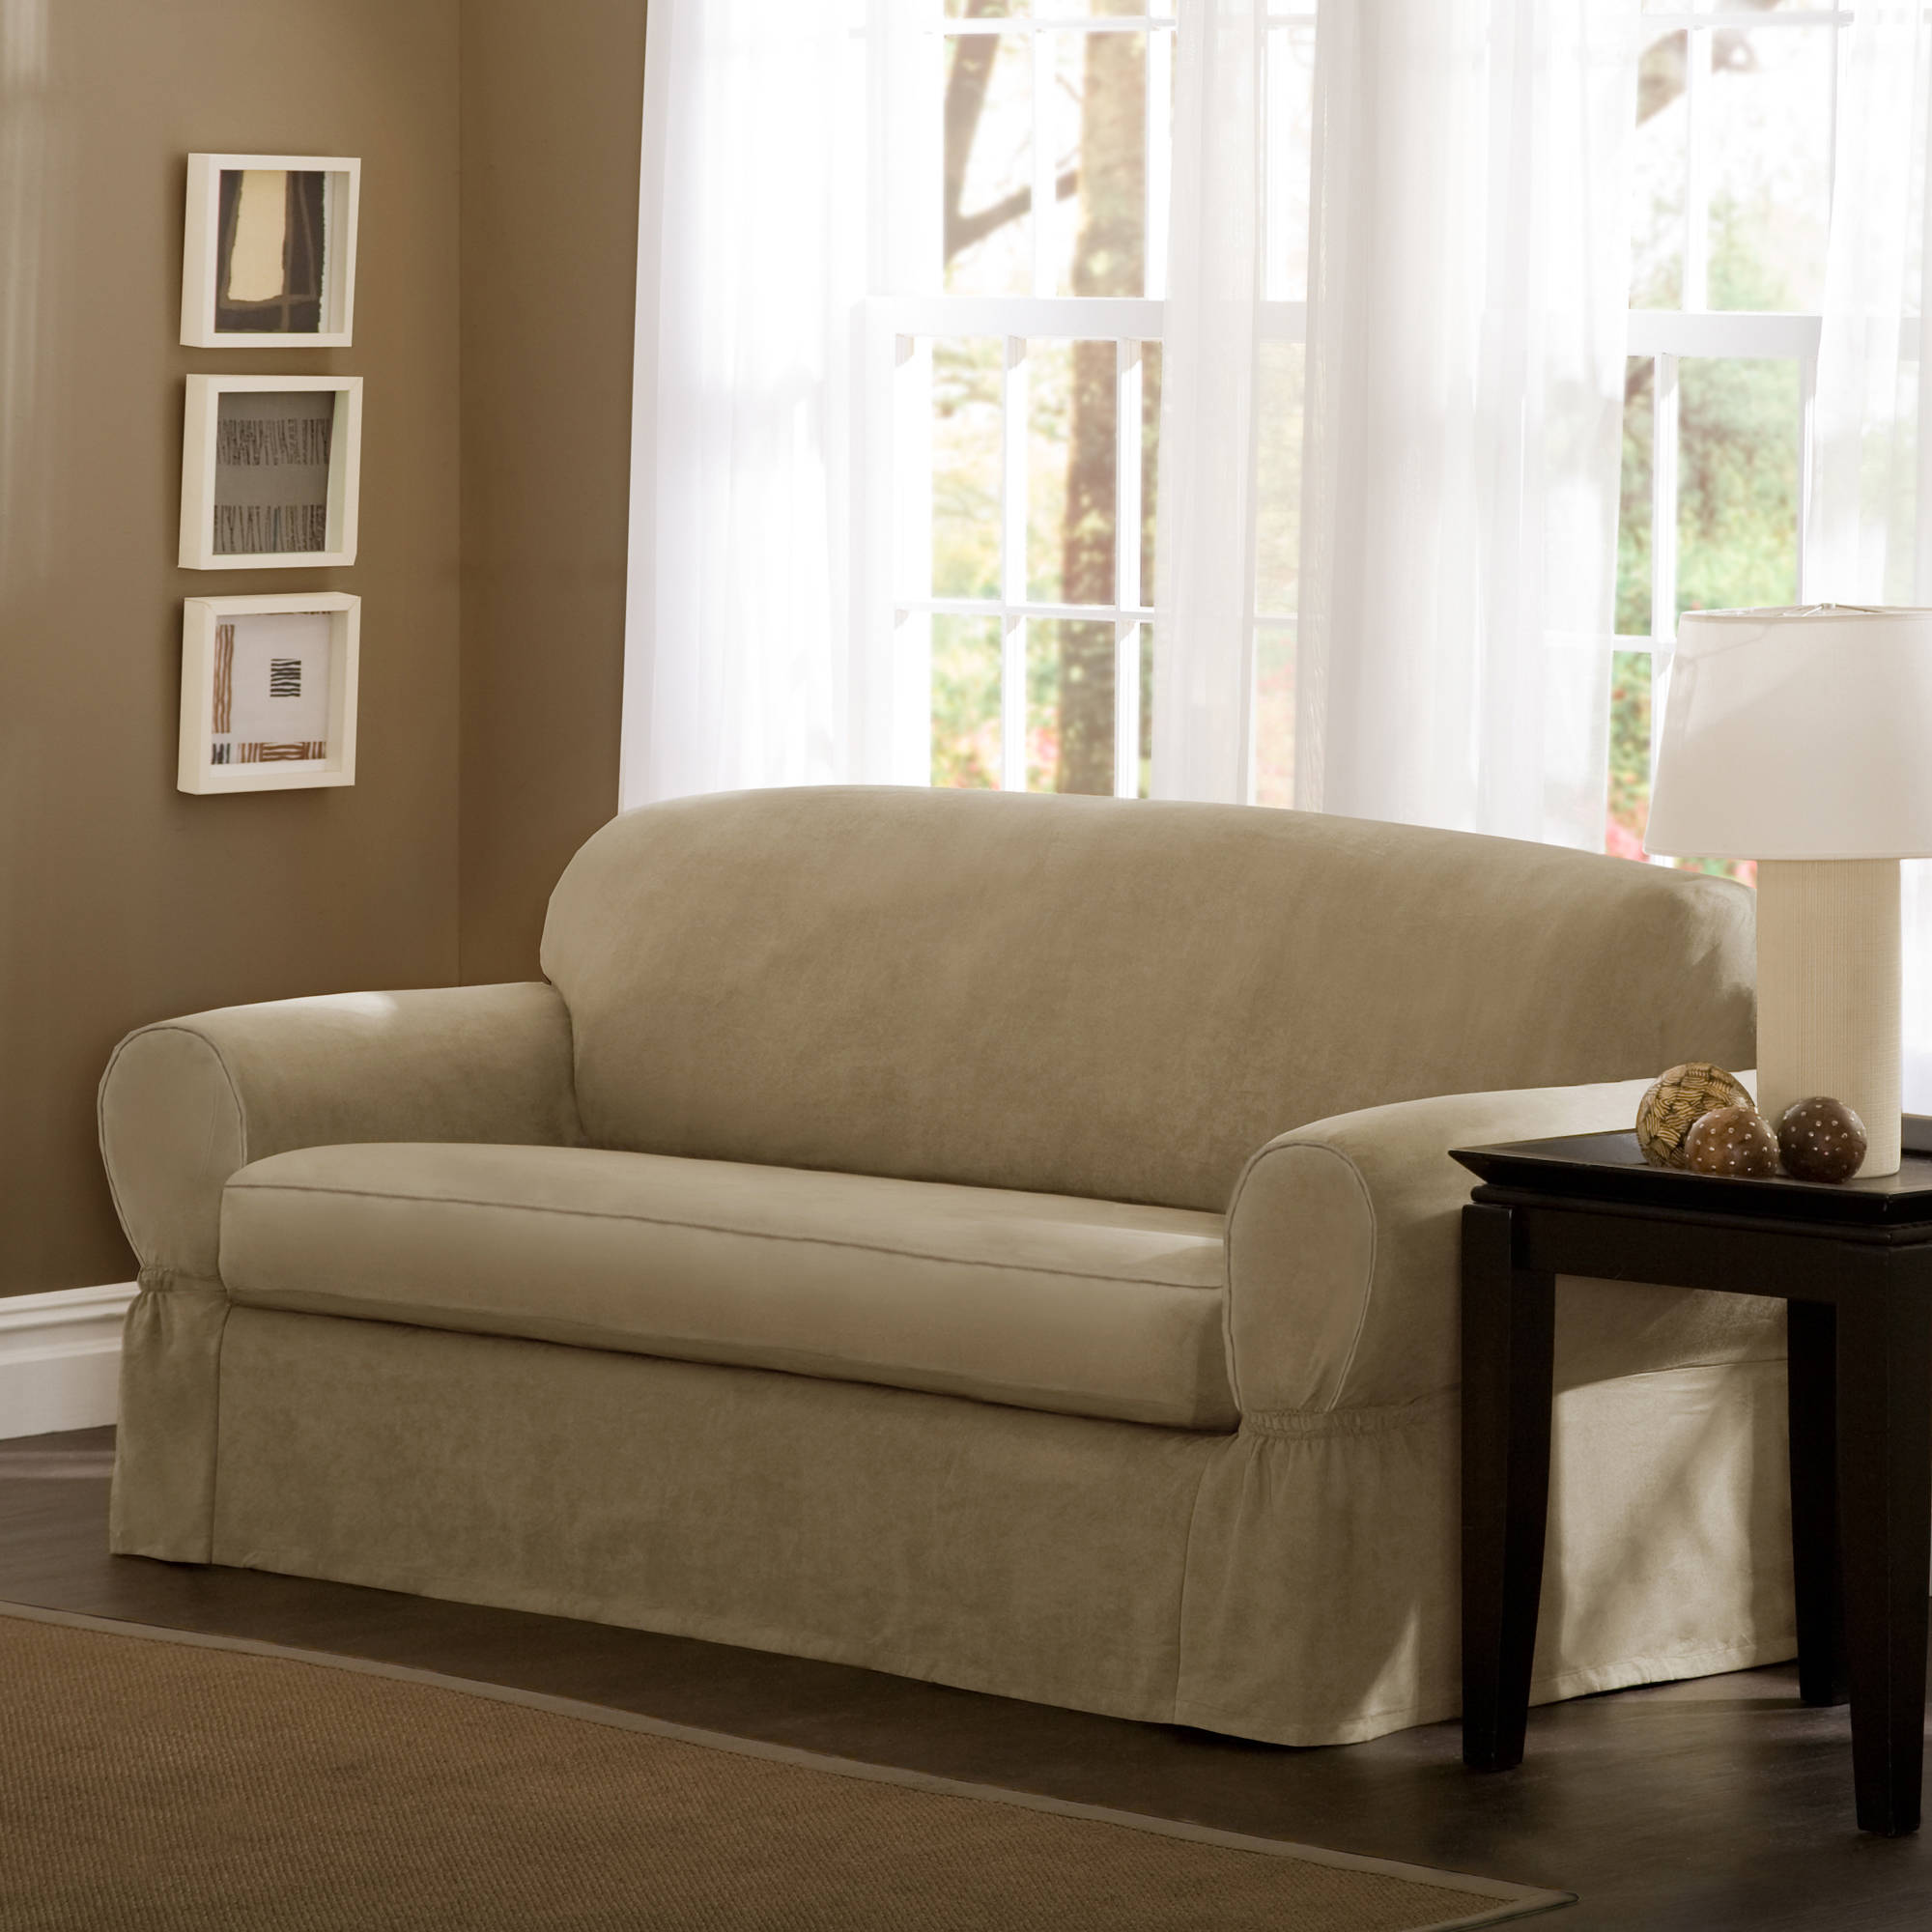 Maytex Piped Faux Suede Non Stretch 2 Piece Loveseat Slipcover